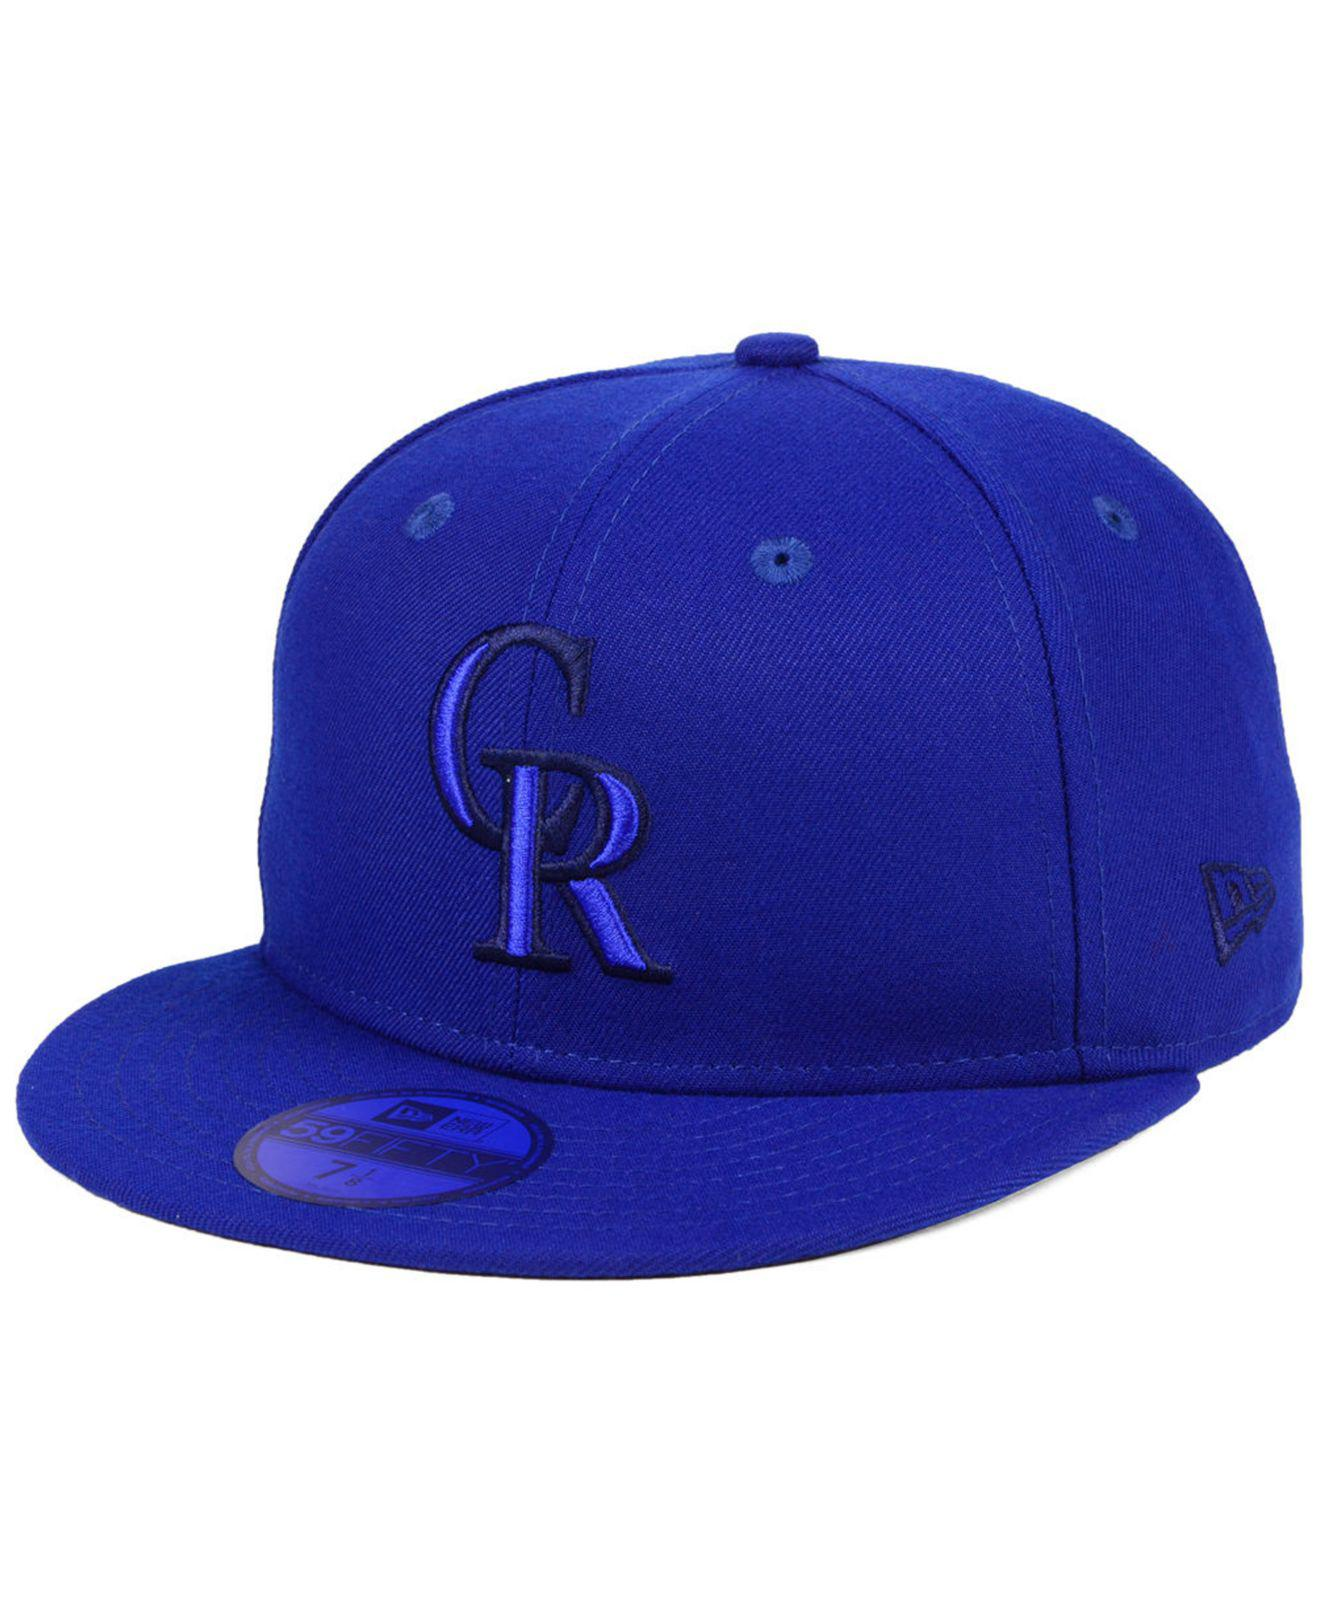 buy popular cbb31 0c63c ... coupon for lyst ktz colorado rockies prism color pack 59fifty fitted cap  in 79324 8e325